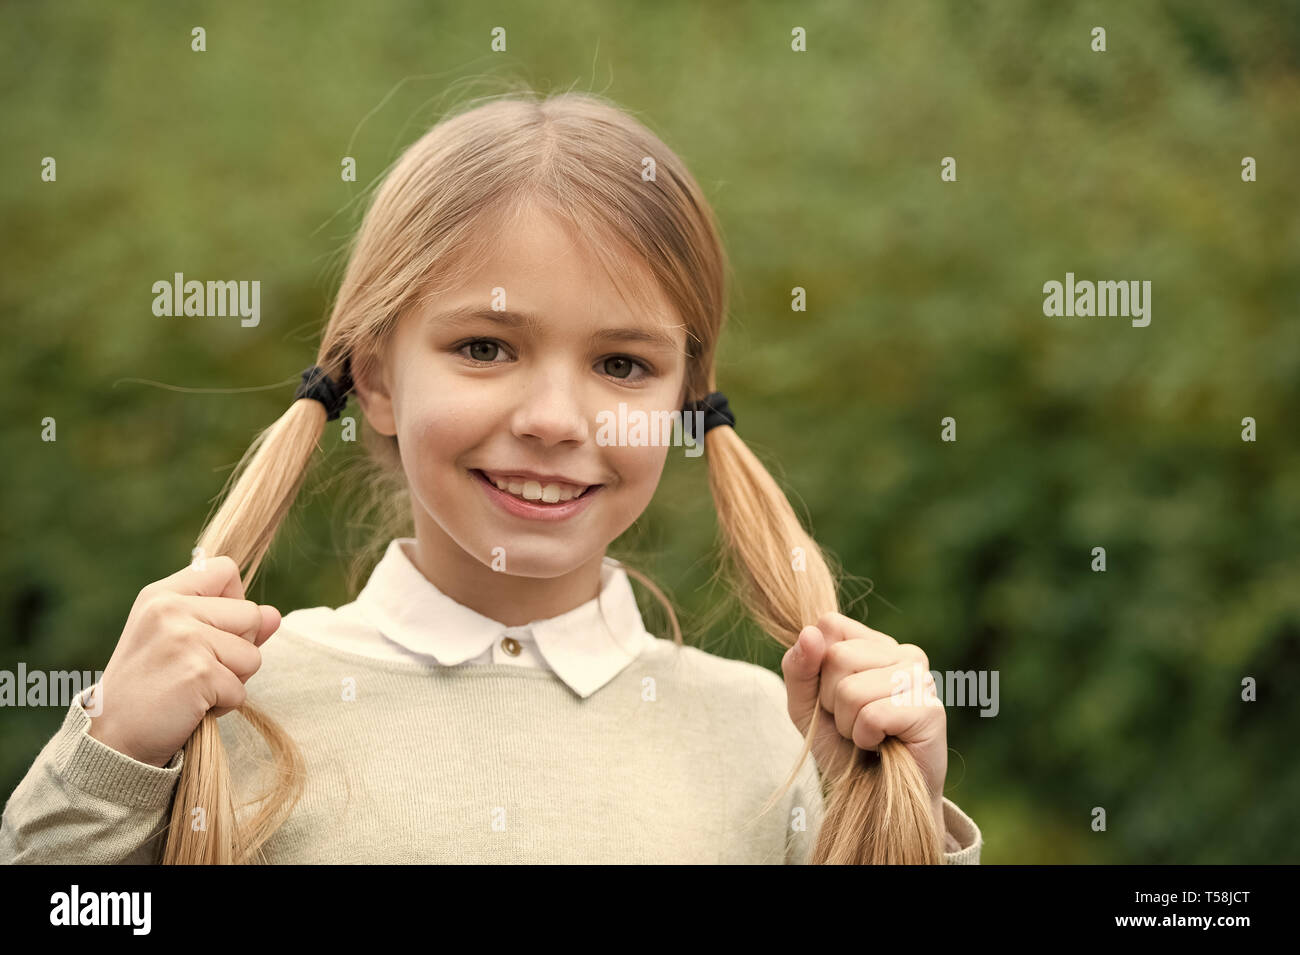 Girl happy smile with blond hair ponytails on green nature background. Hairstyle for cute schoolgirl. She looks tidy and cute with those ponytails. Easy tips create daily hairstyle. - Stock Image